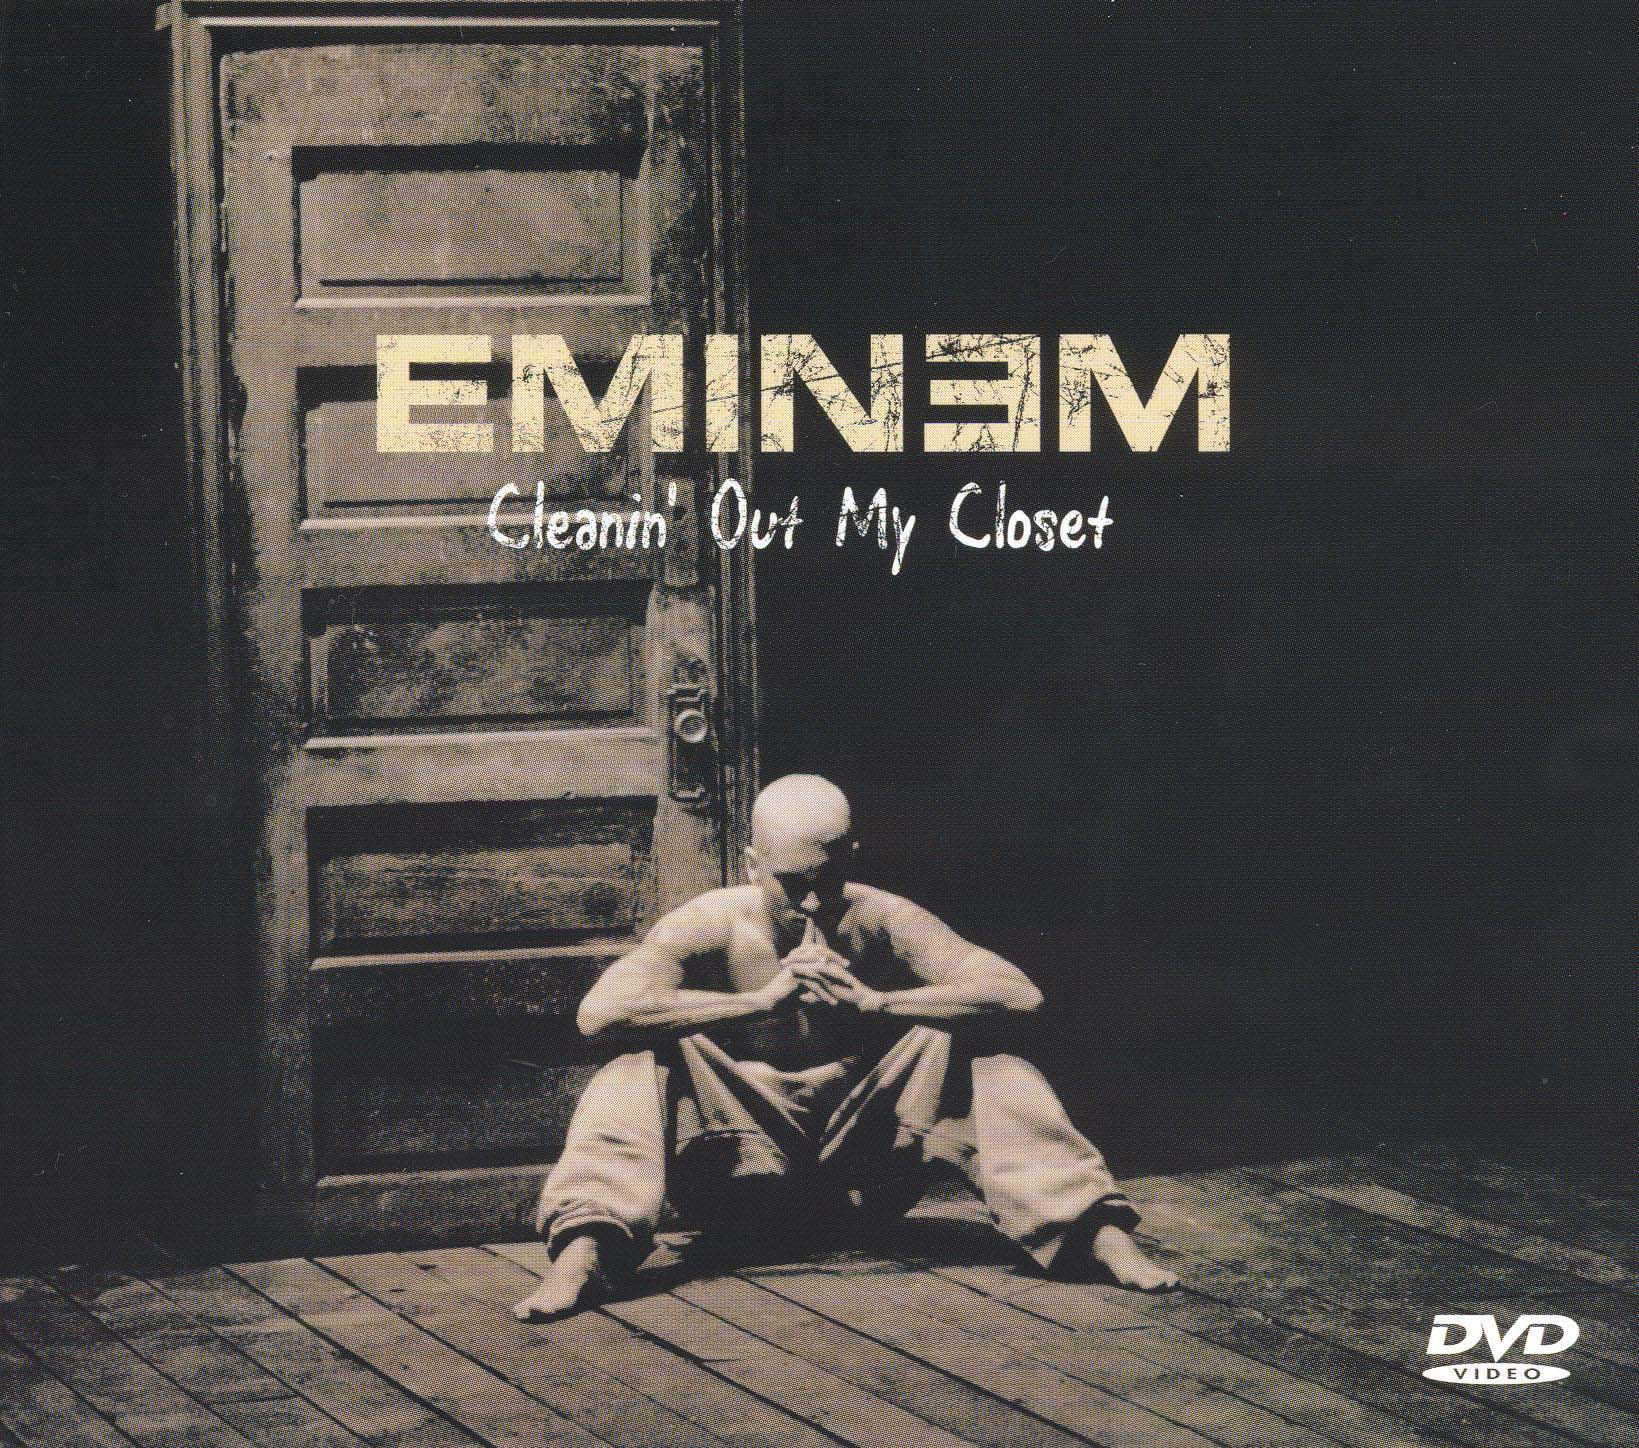 Eminem: Cleaning Out My Closet